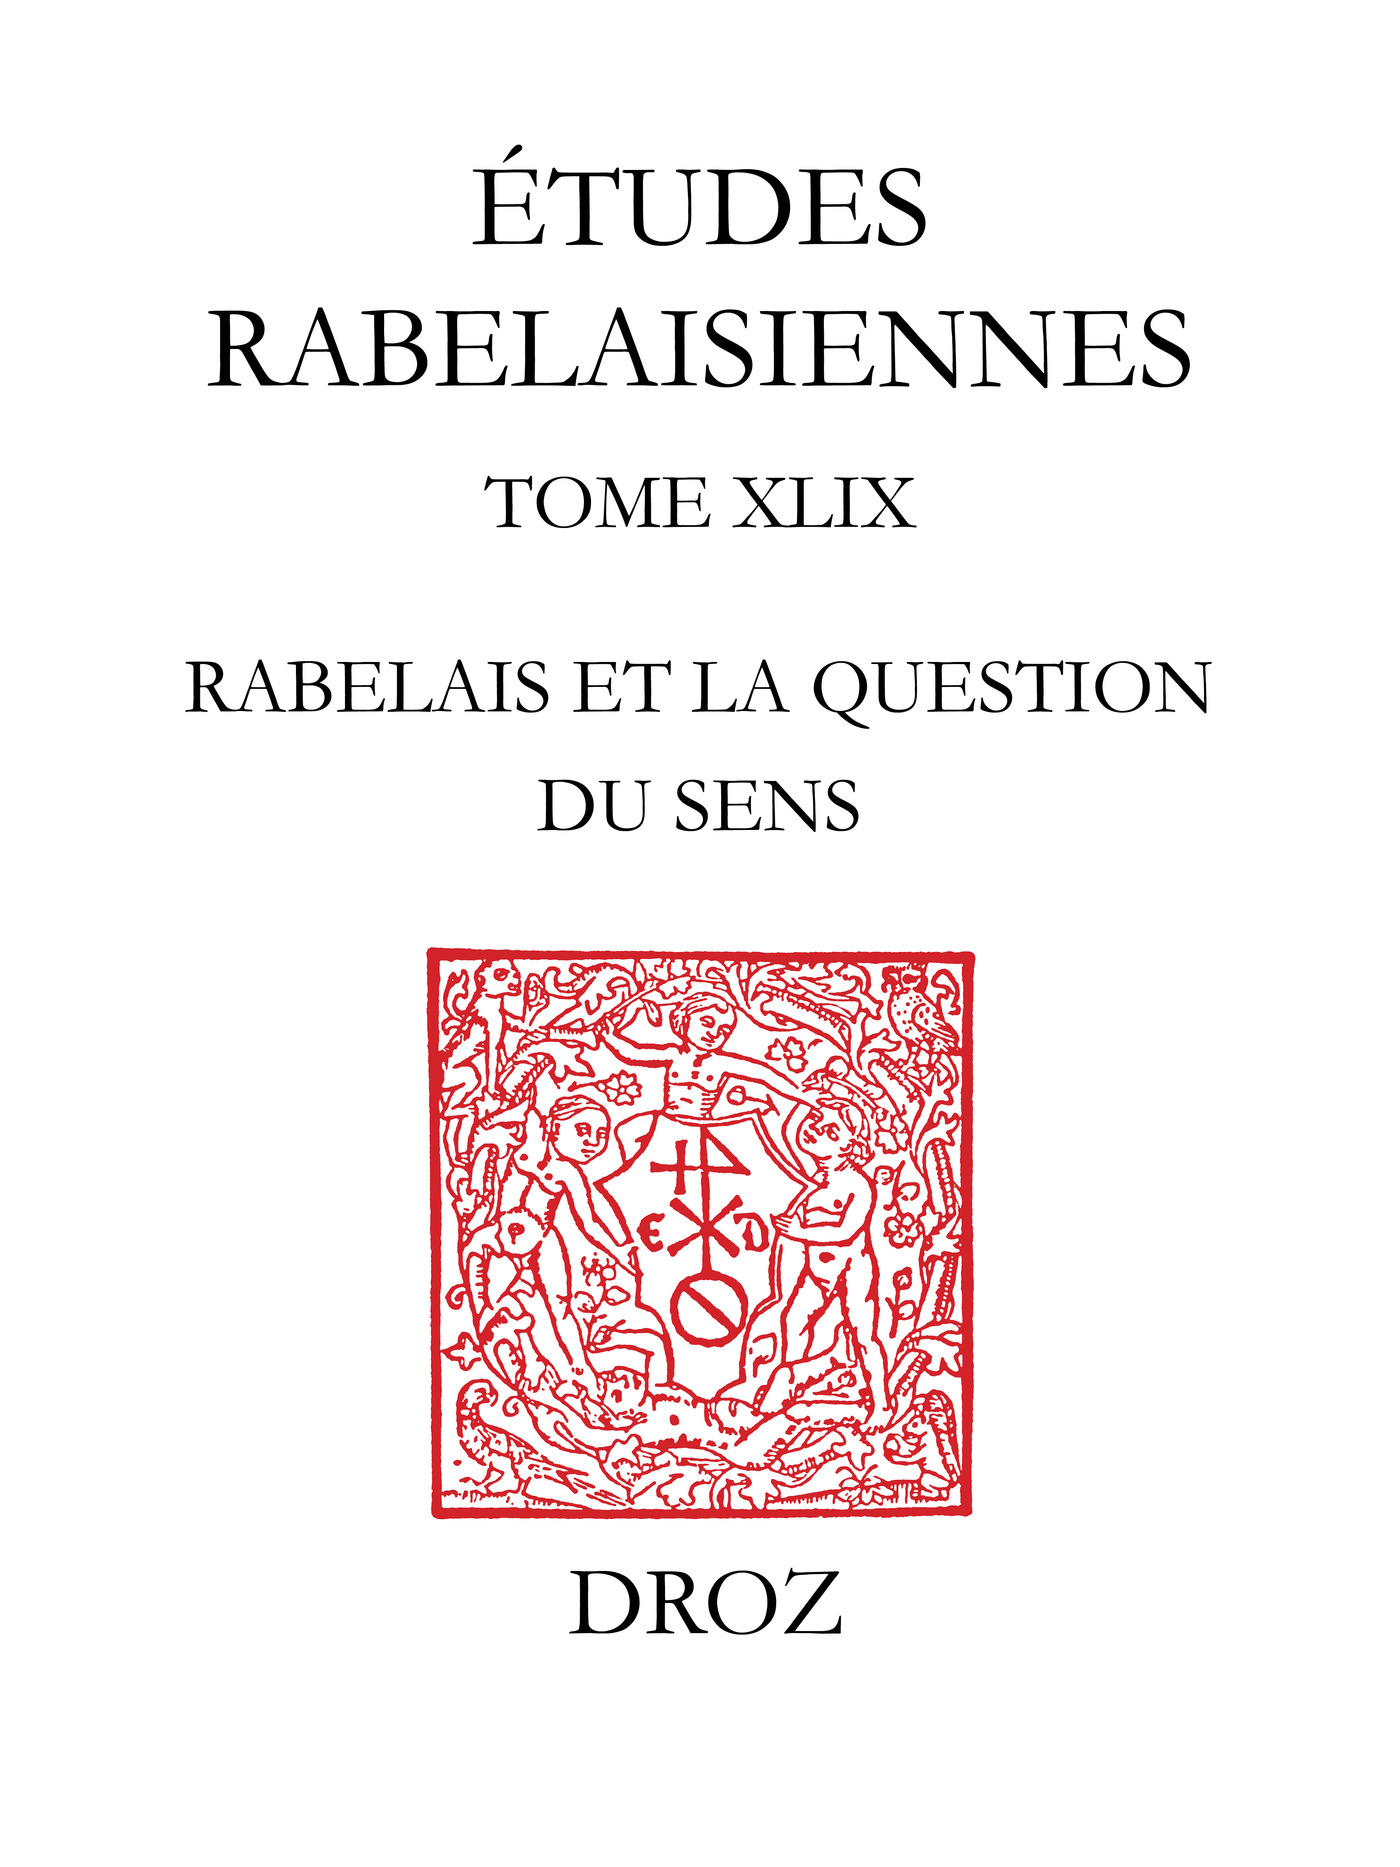 Rabelais et la question du sens